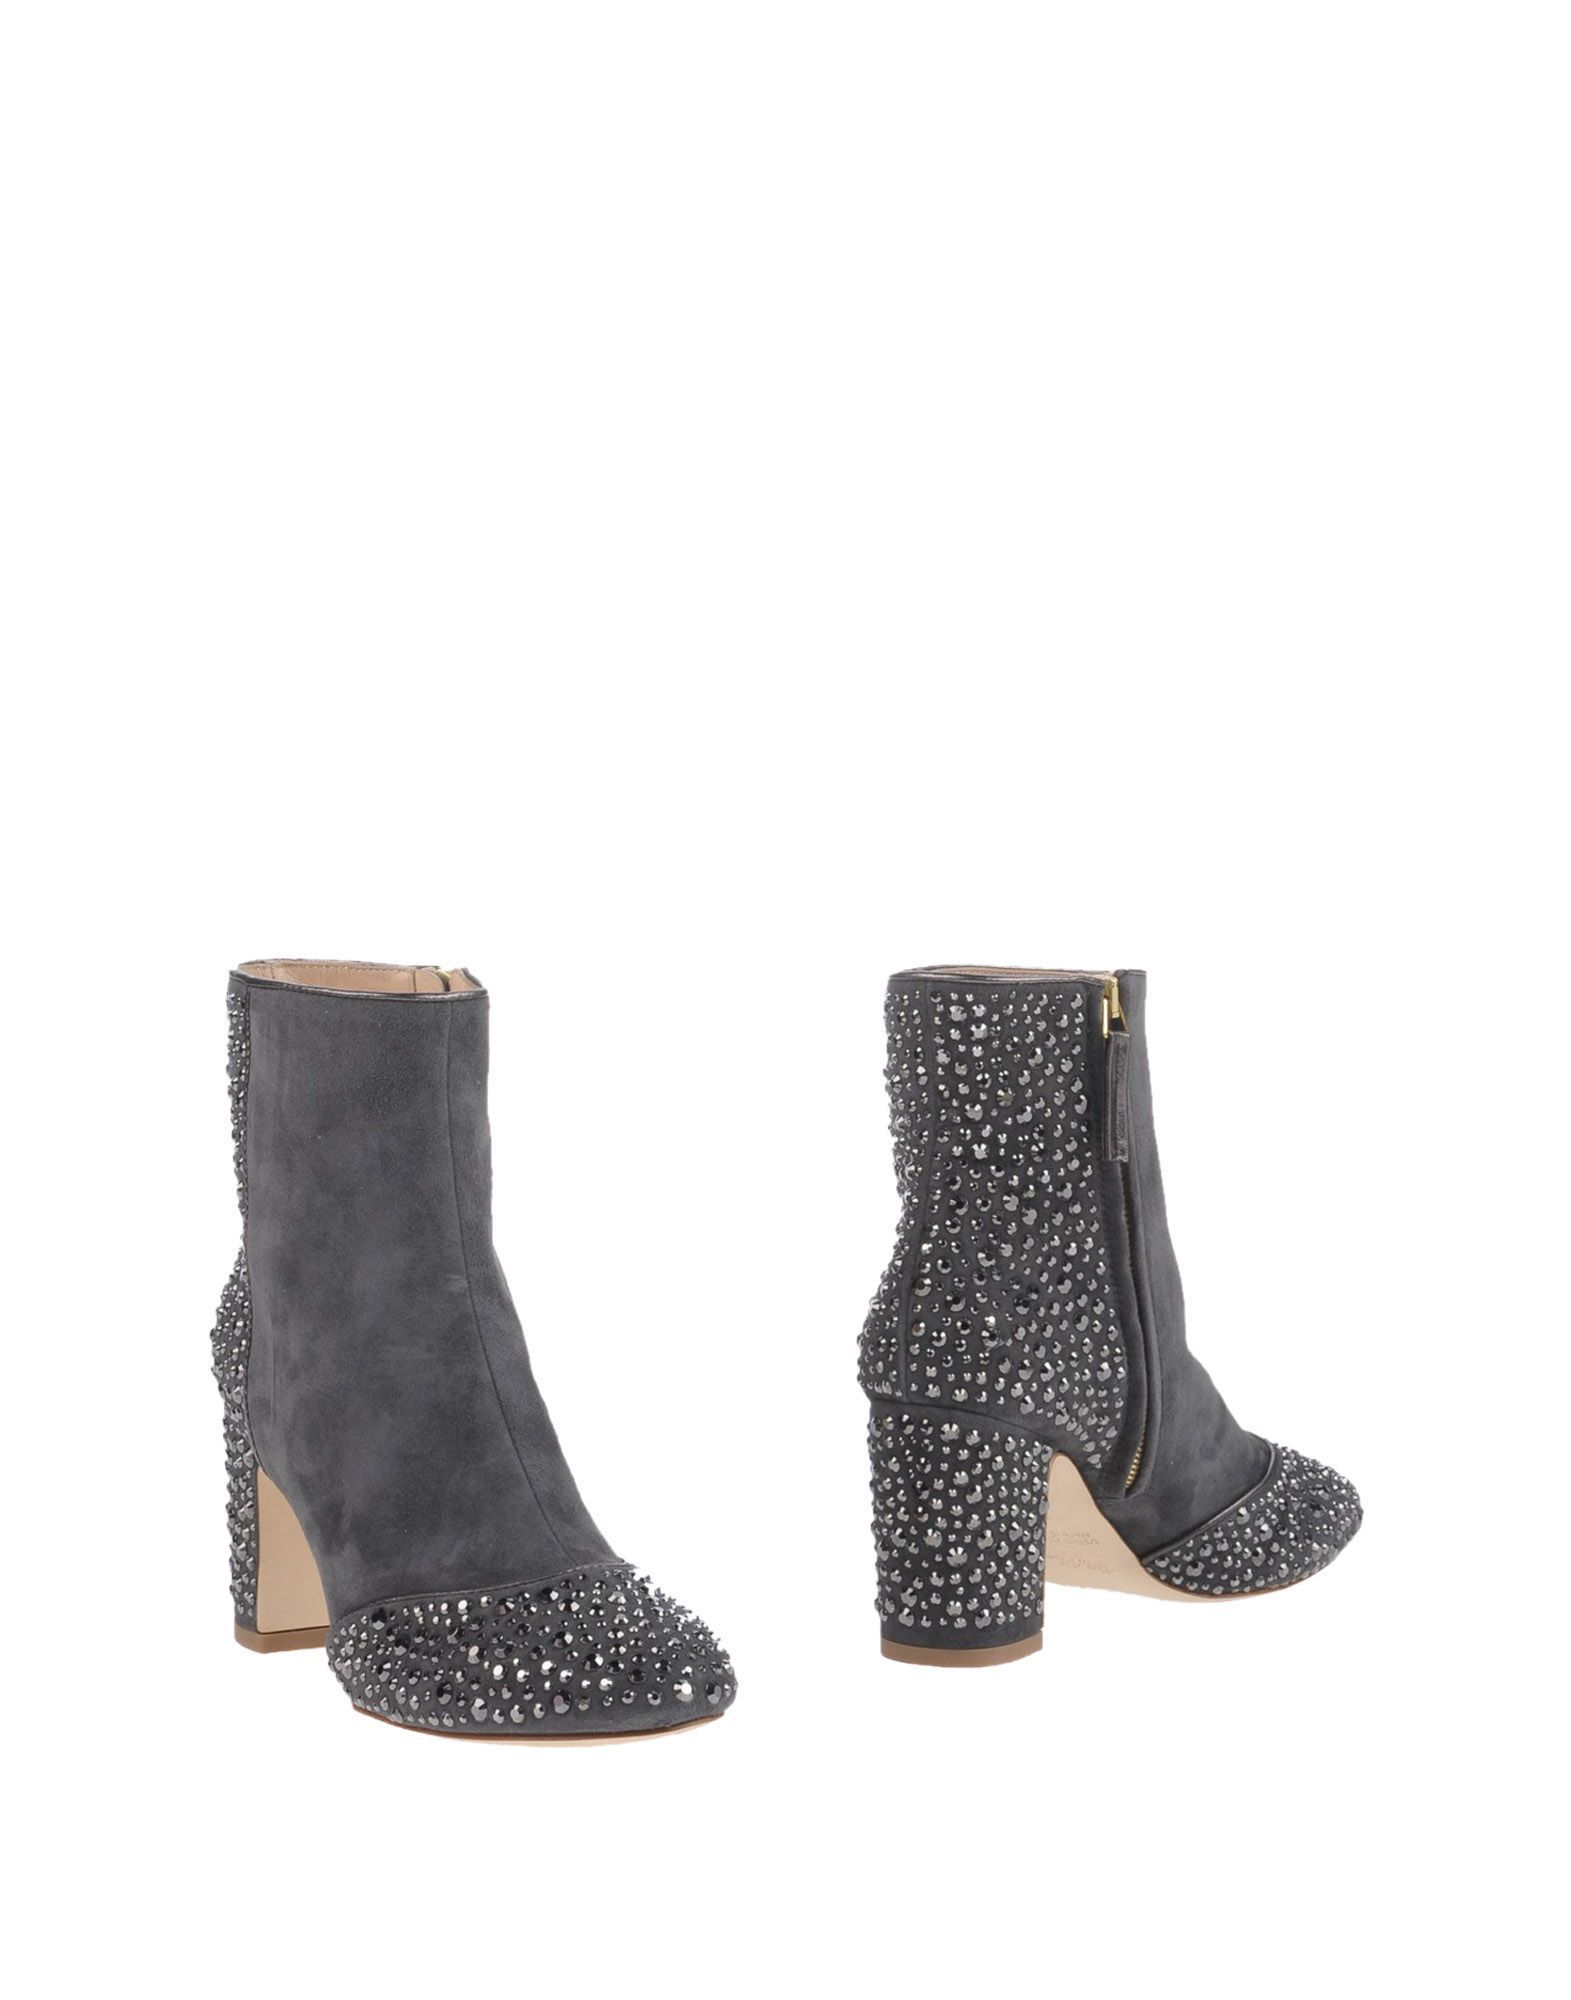 shop polly plume shoes